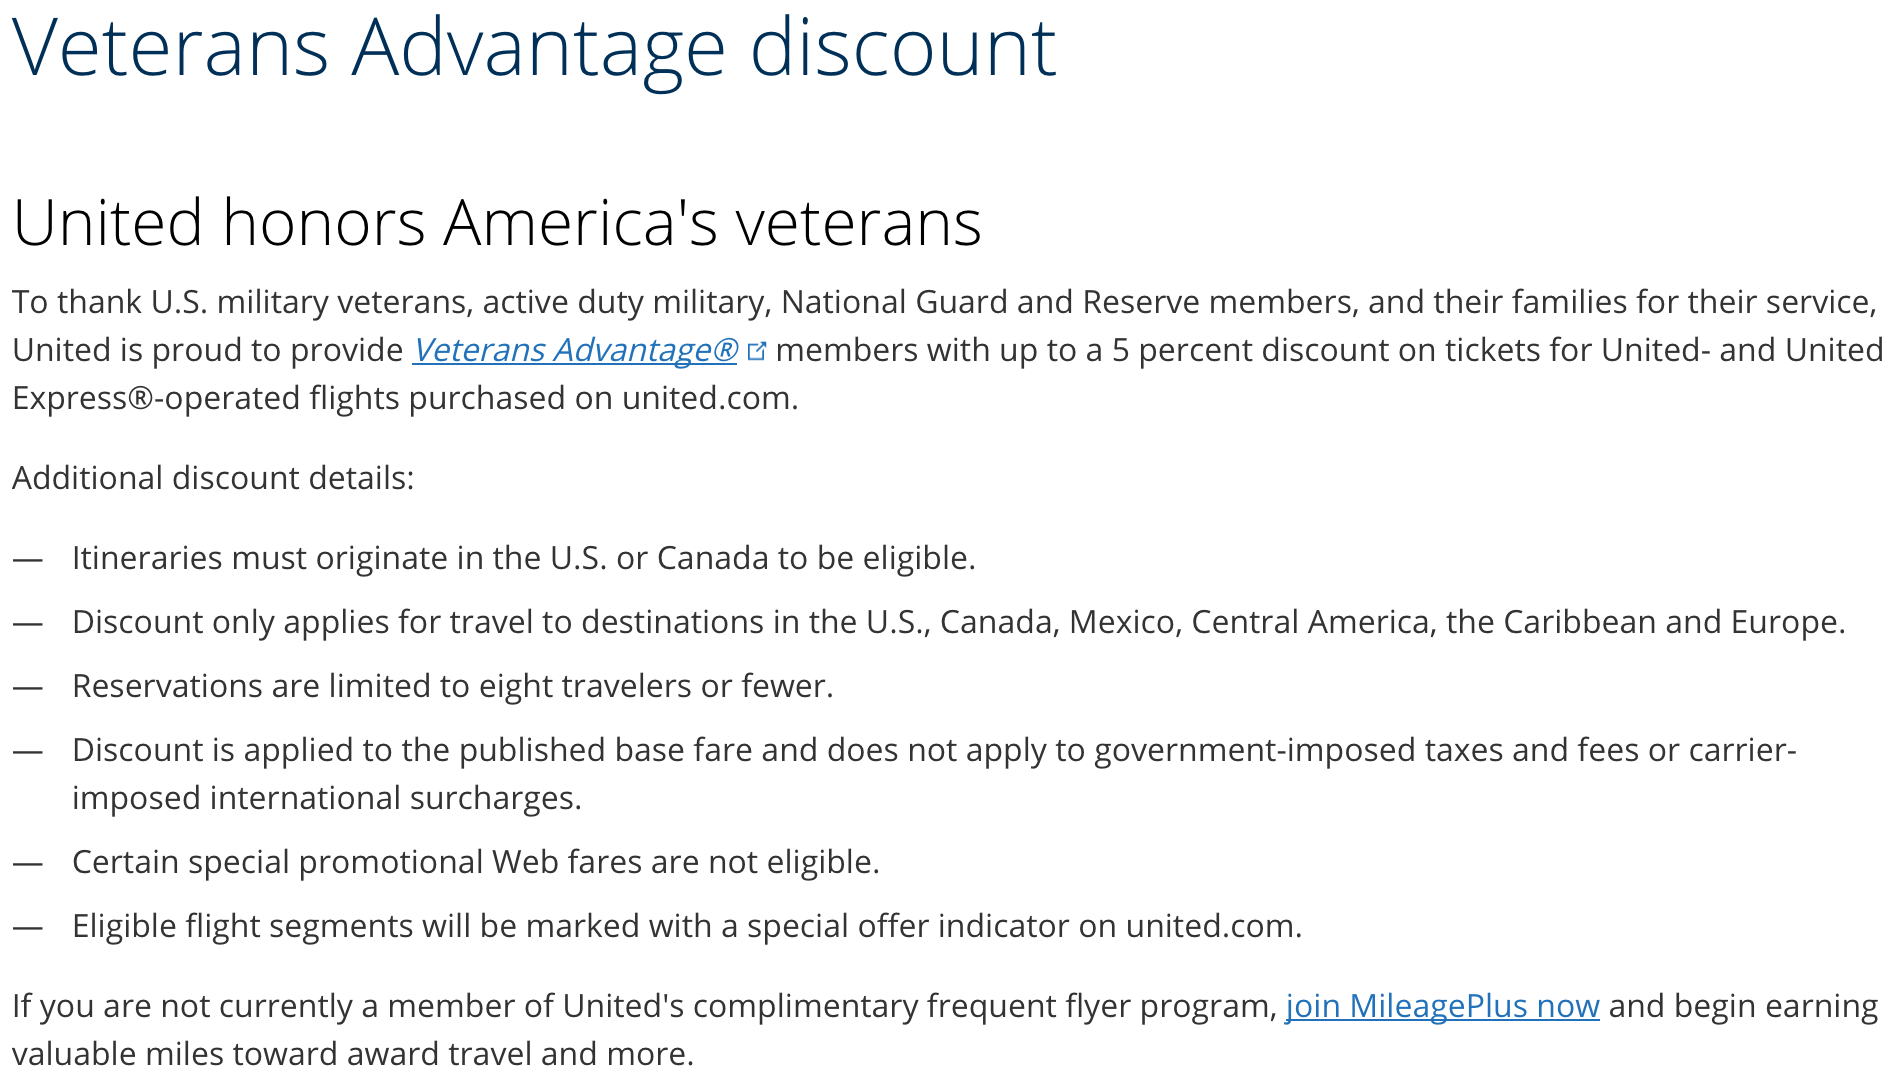 United Airlines Military Veteran Discounts